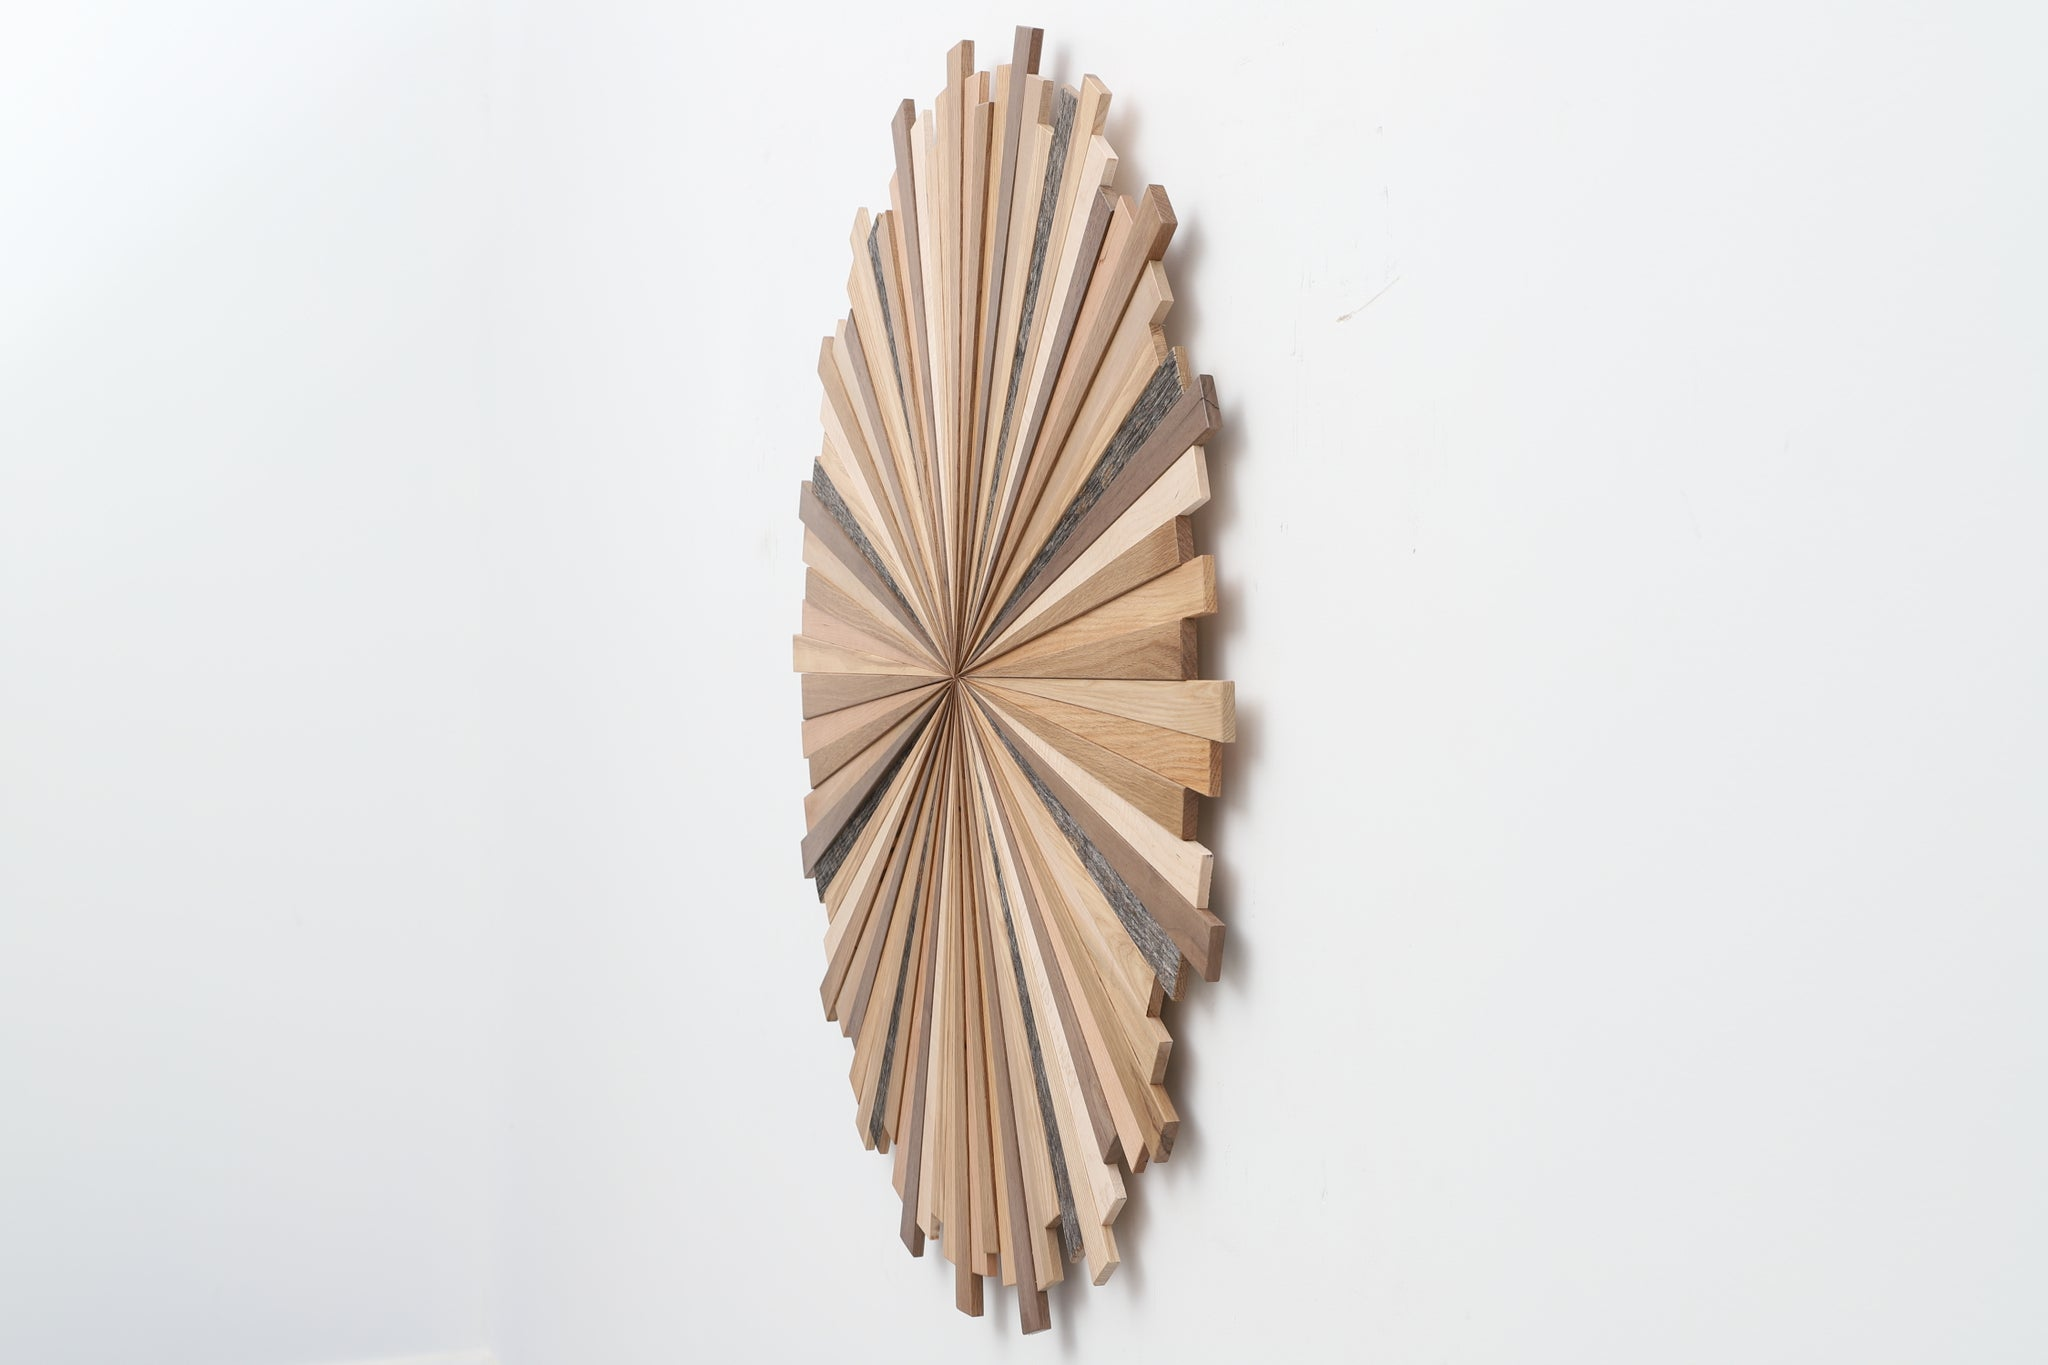 wood starburst artwork